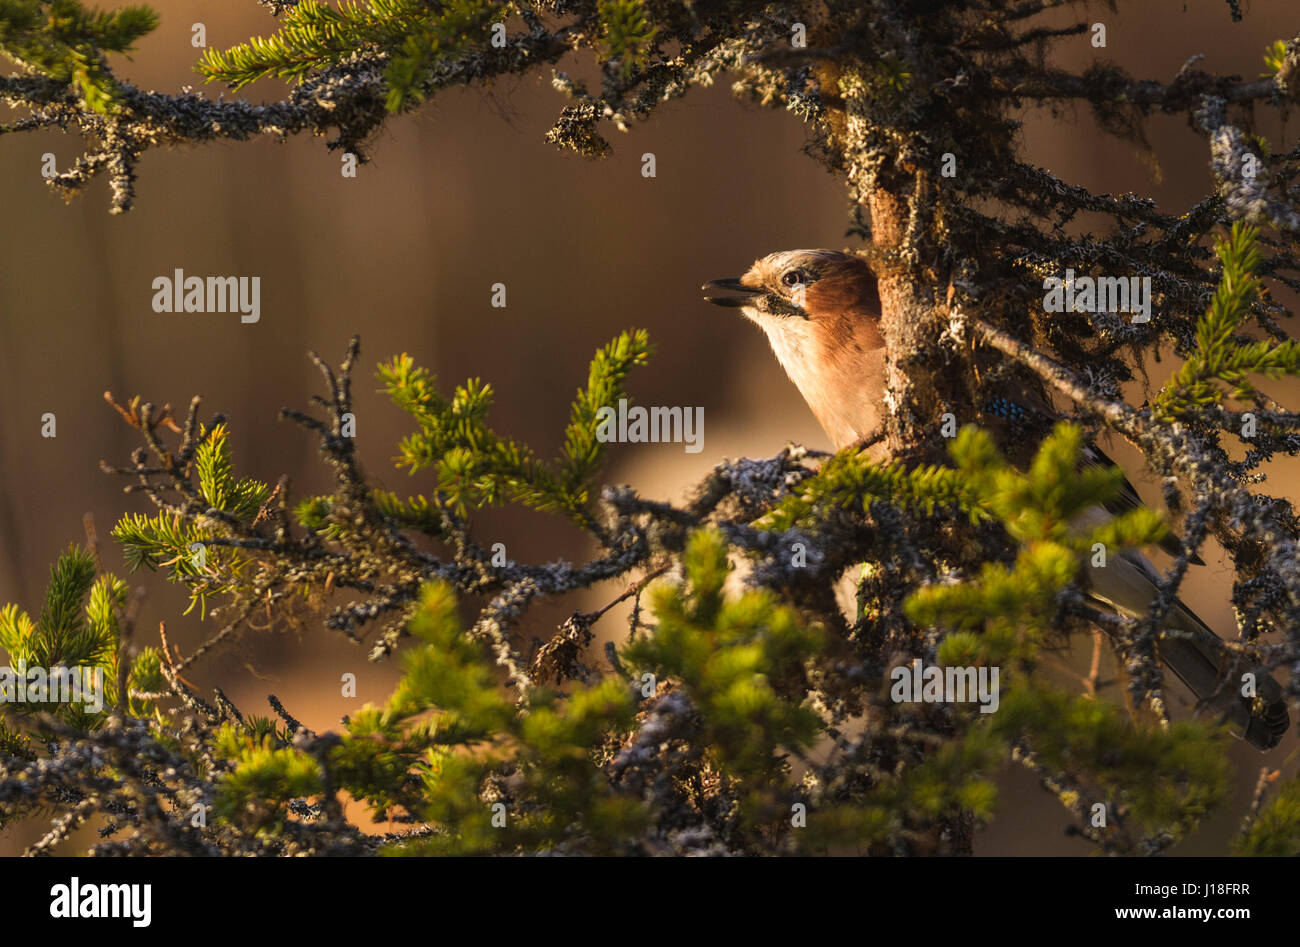 Eurasian Jay, Garrulus glandarius, sitting in a spruce tree with lichen around it, in warm evening light, Gällivare, - Stock Image